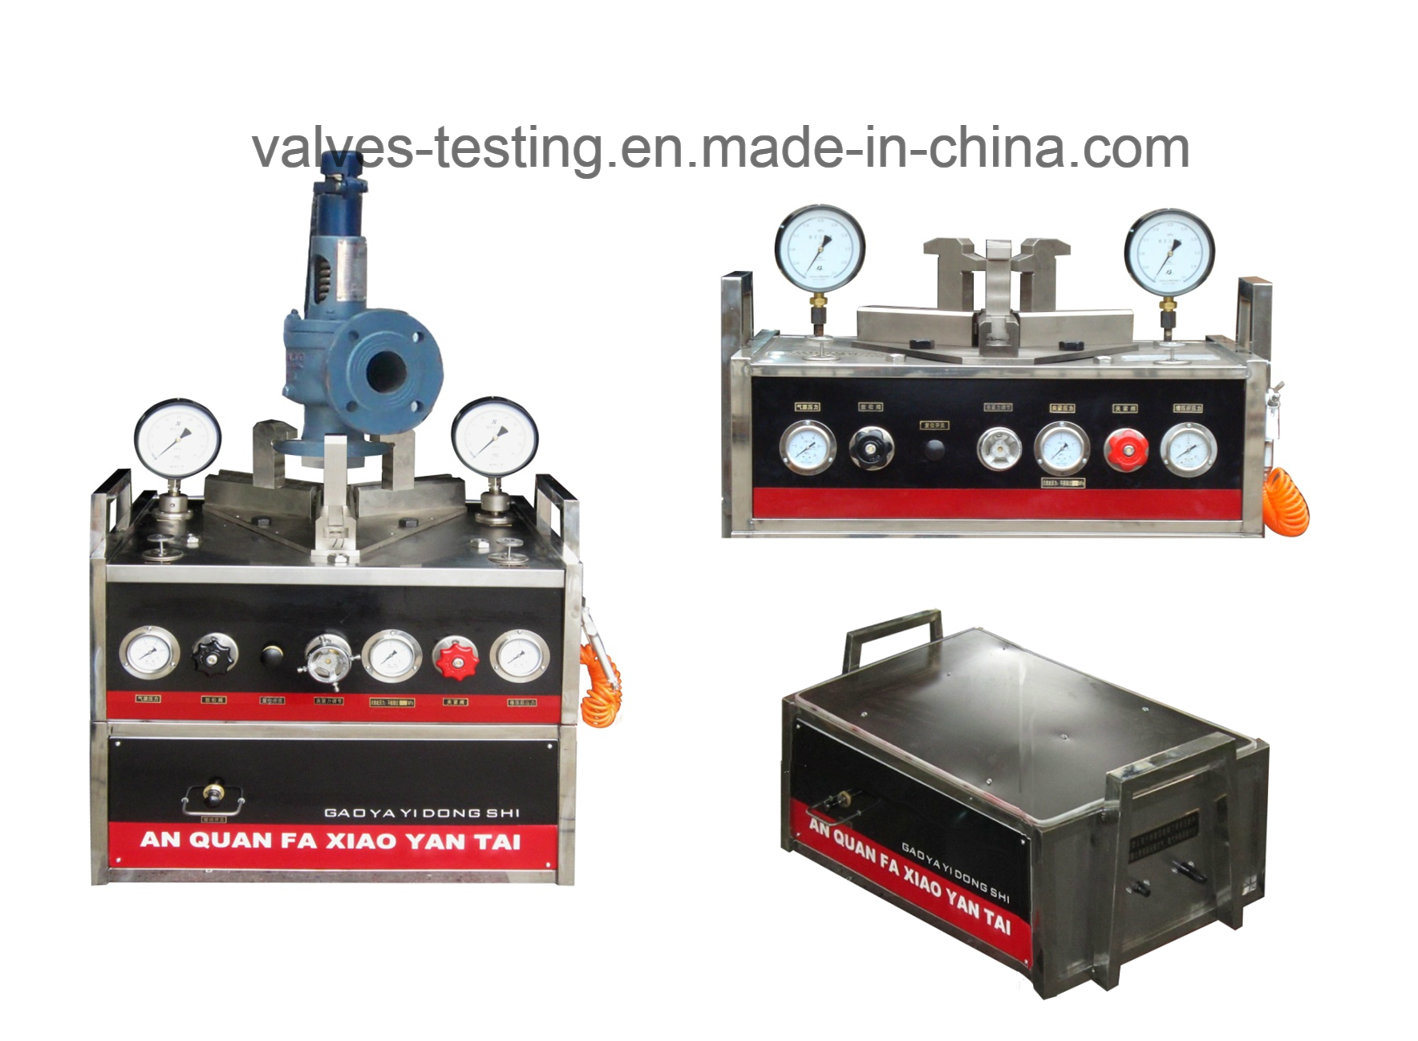 Mini Portable High Pressure Safety Valve Test Station